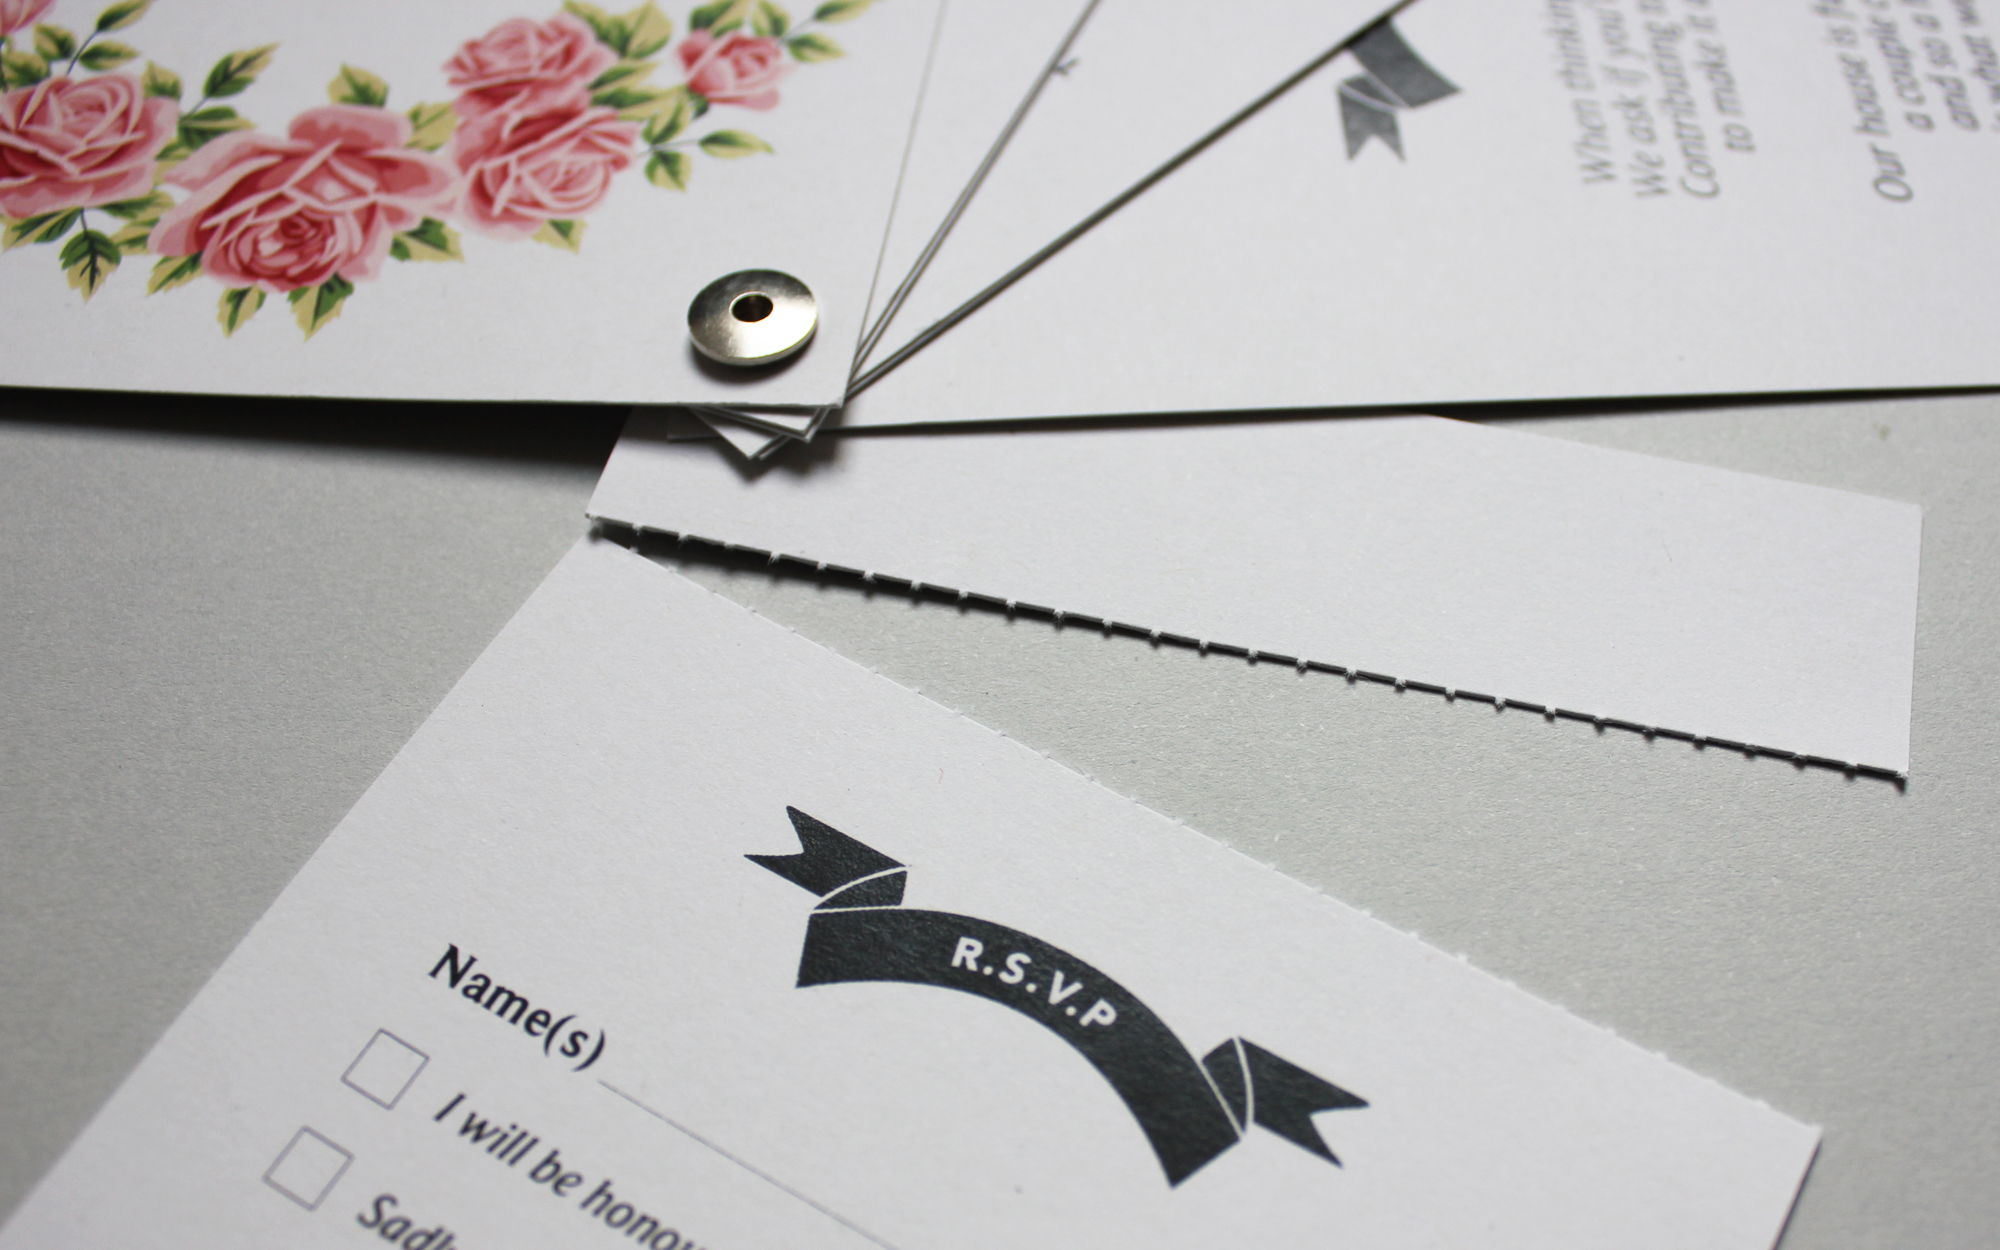 matthew_pomorski_graphic_designer_print_wedding_stationary_4